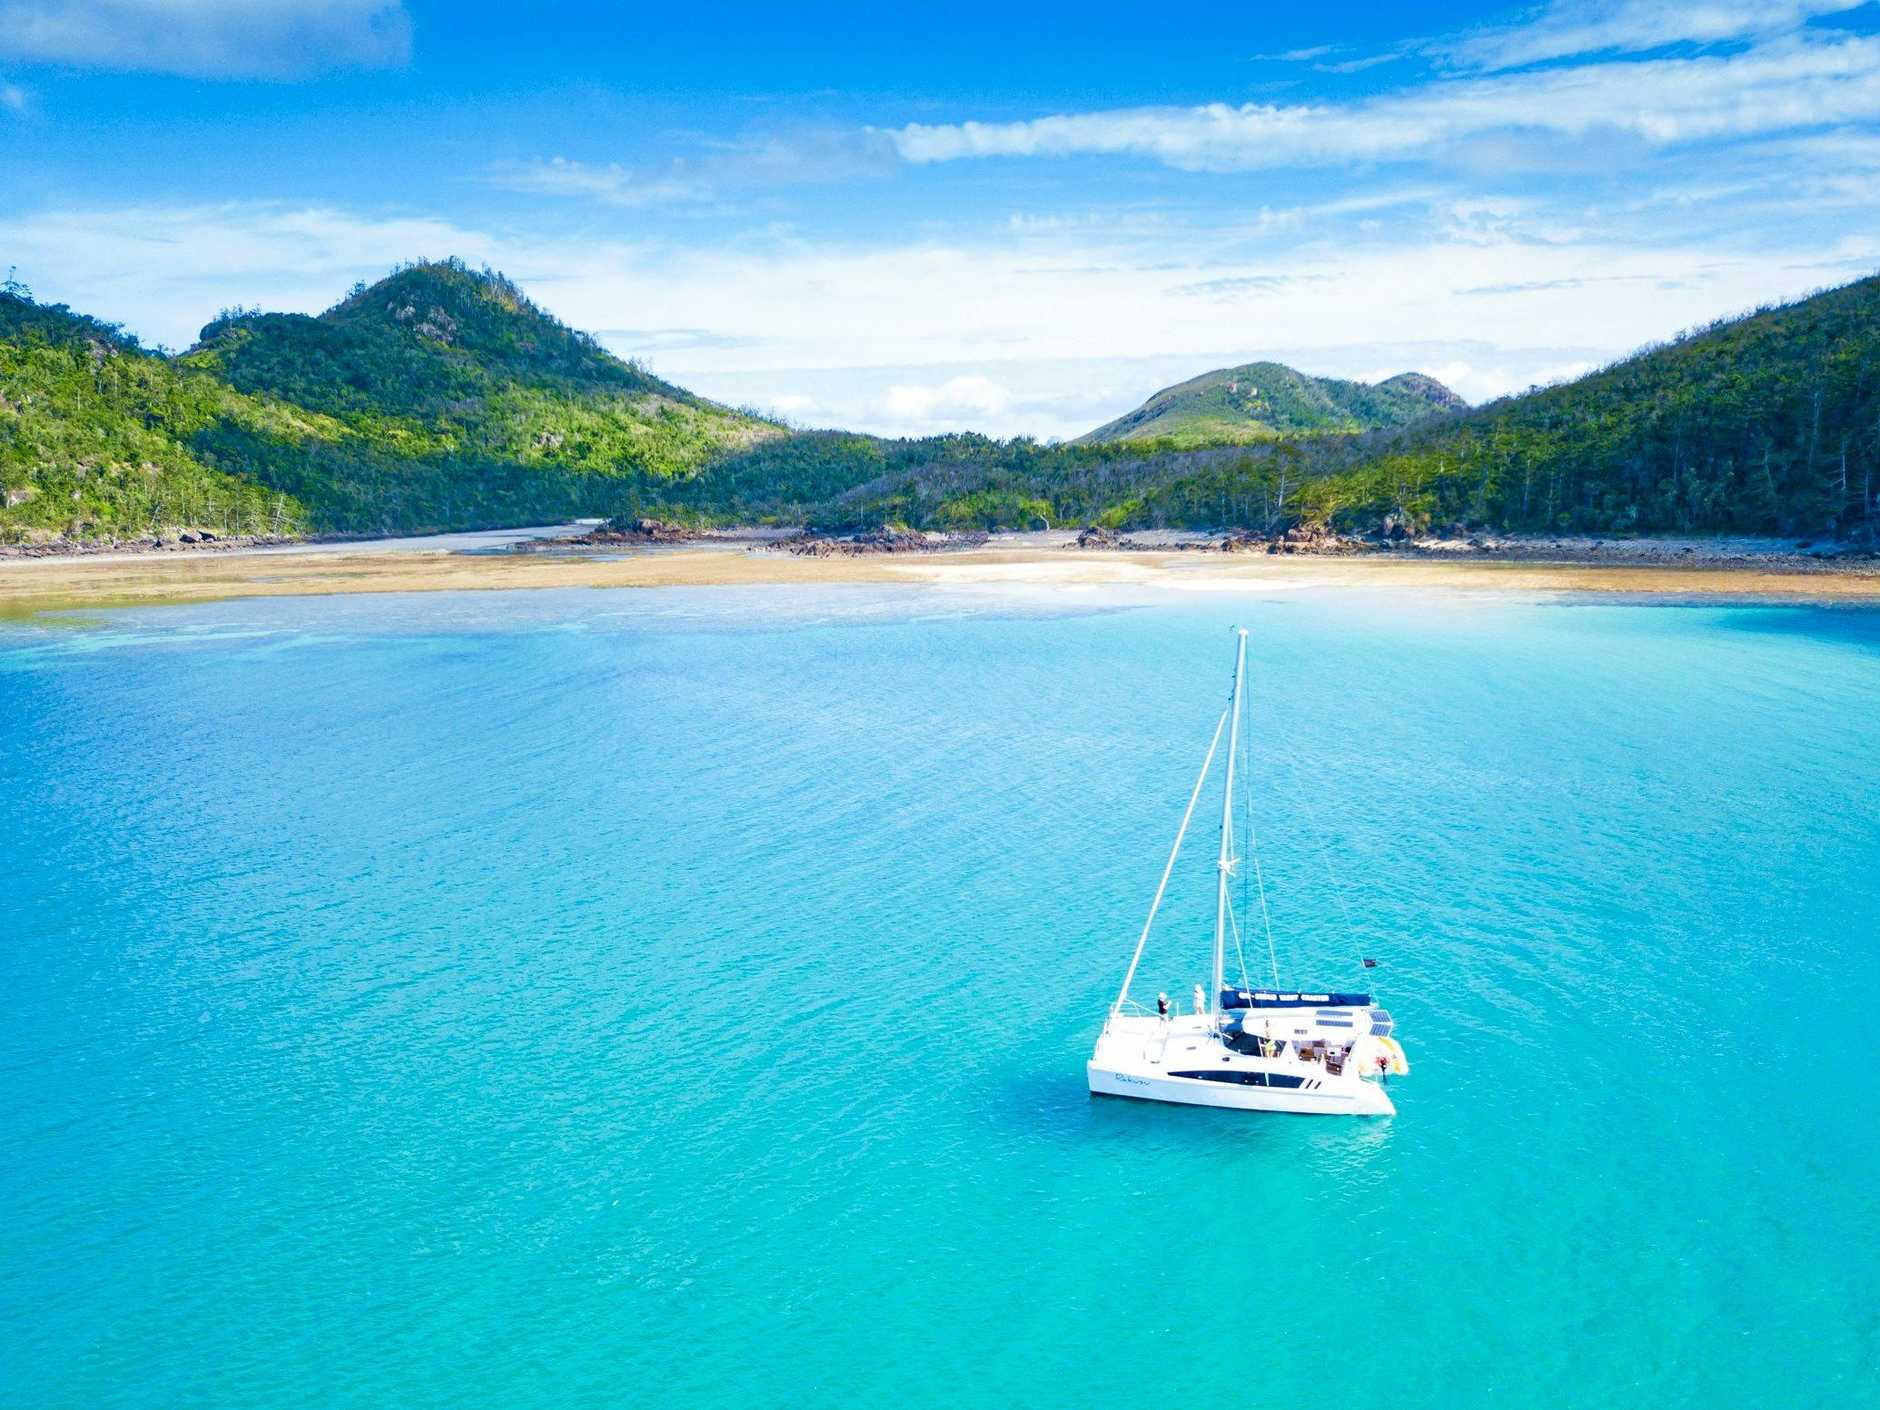 The truly best way to voyage around the Whitsunday Islands is by private boat.